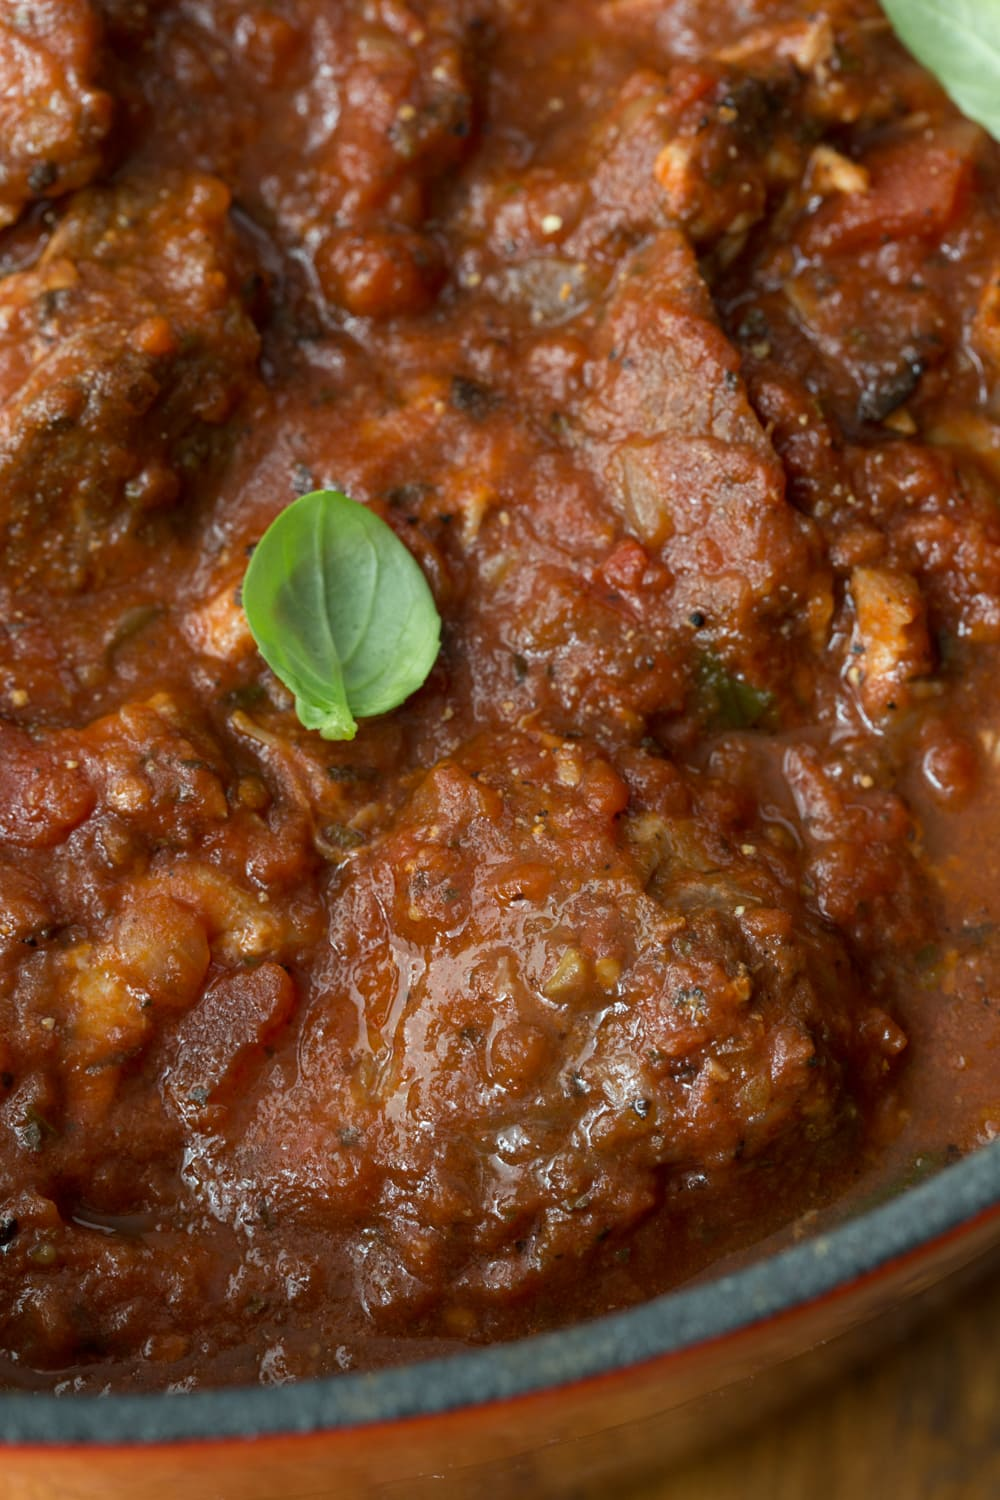 Slow Roasted Italian Pork - make-ahead, super tender and succulent pork in a thick, rich Italian tomato sauce. Who doesn't love Italian?